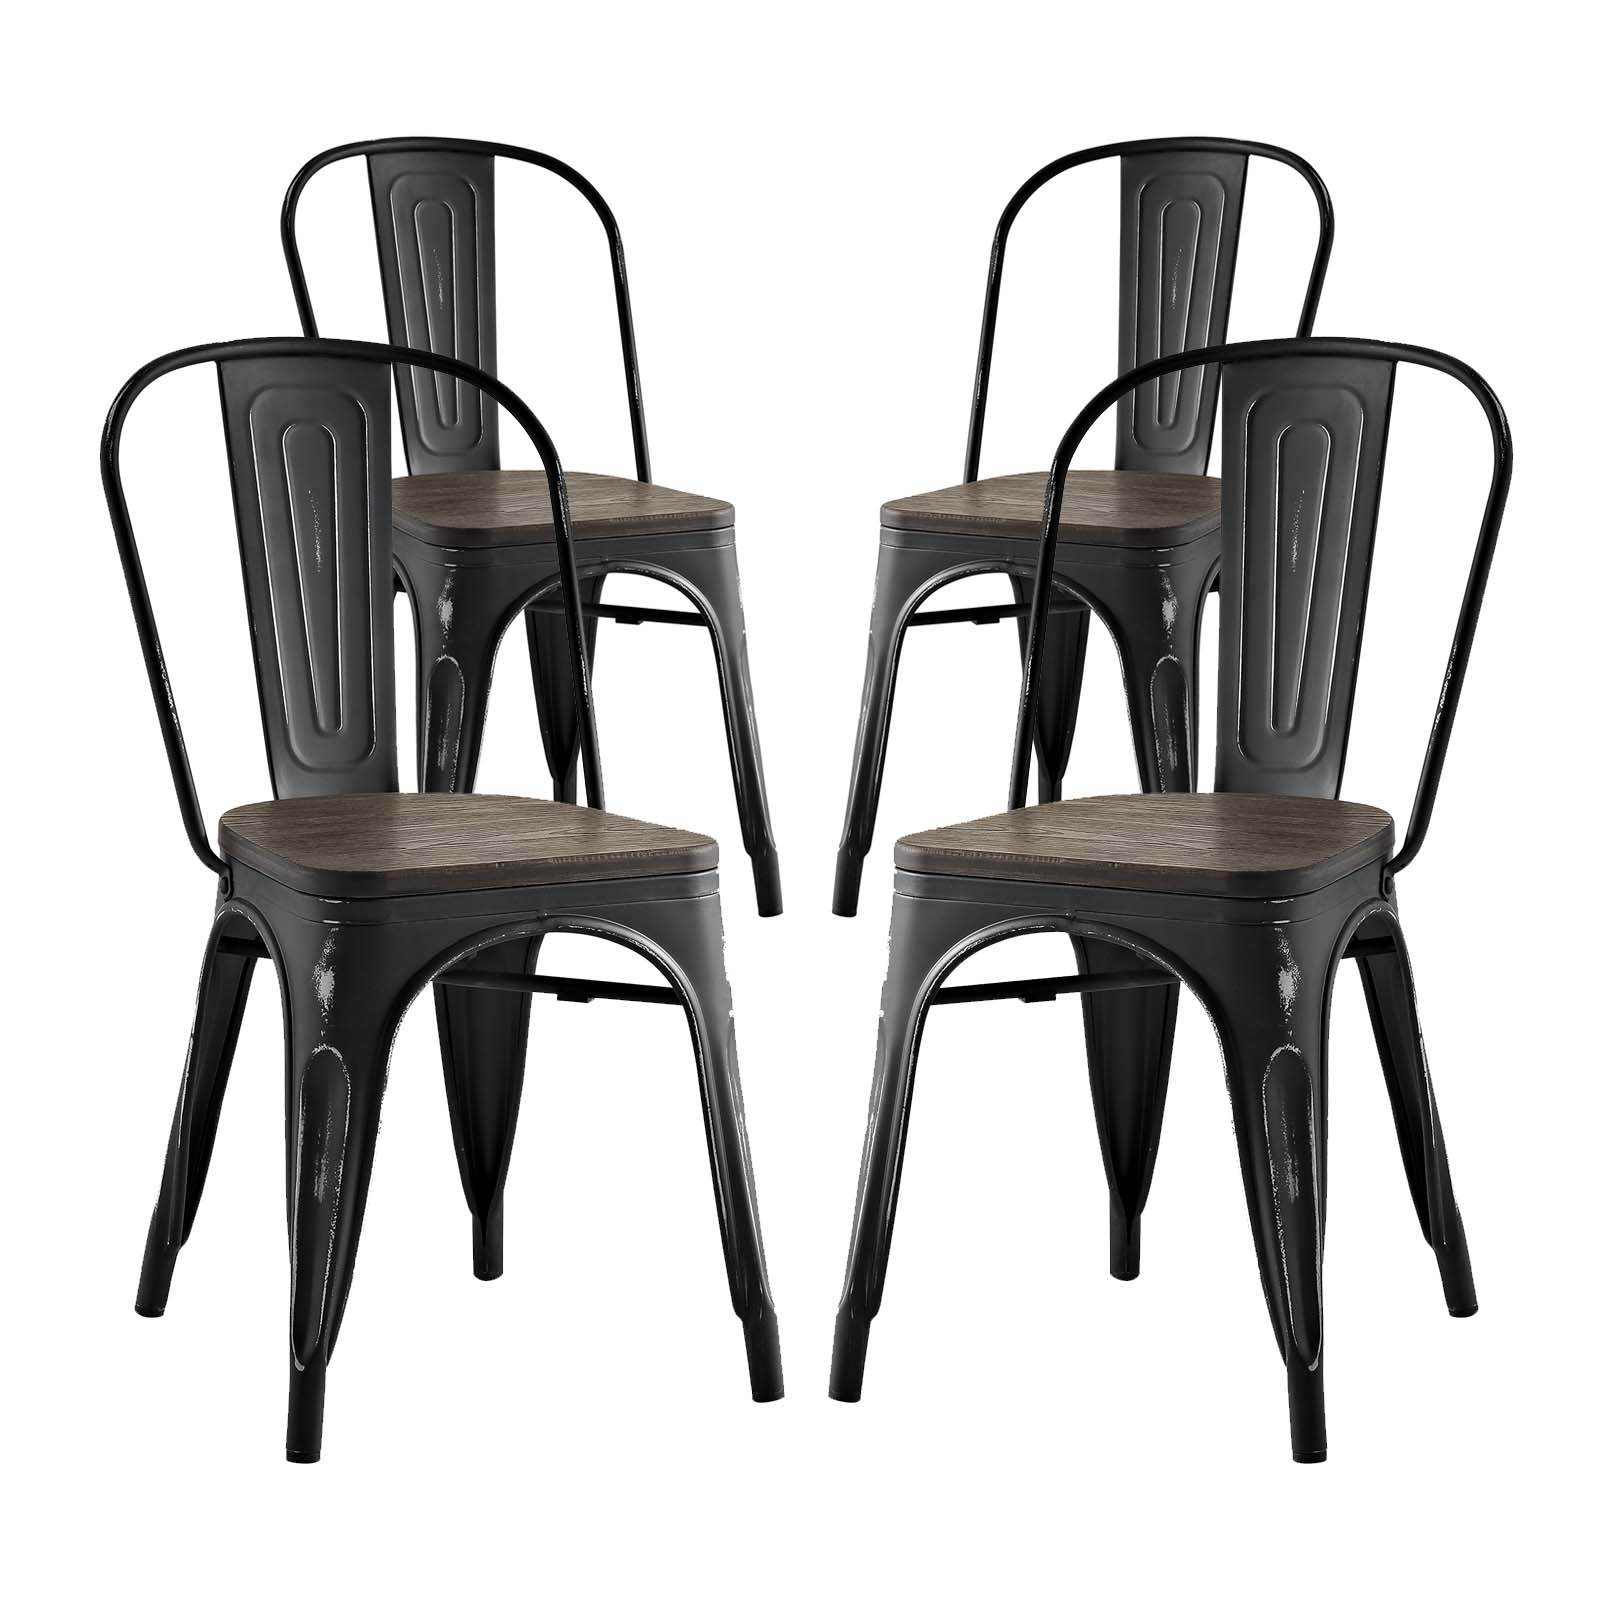 Modern Contemporary Urban Design Industrial Distressed Antique Vintage Style Kitchen Room Dining Chair ( Set of 4), Black, Metal